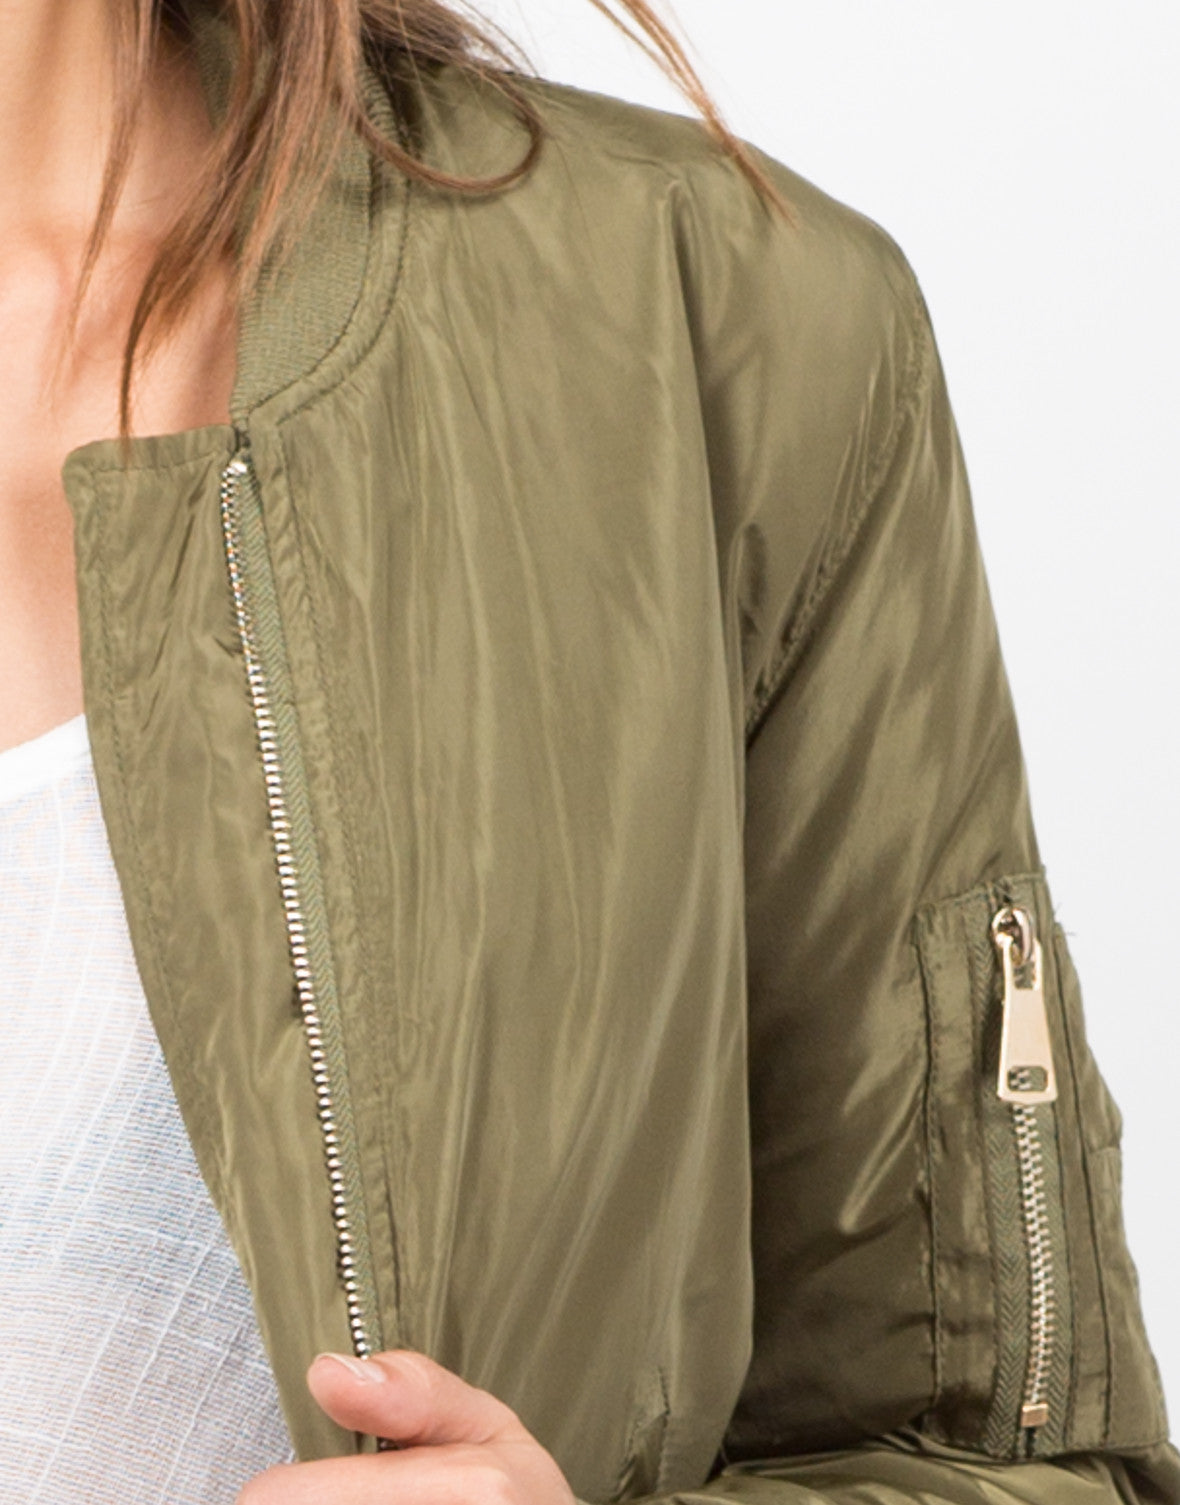 Detail  of Gold Zippered Bomber Jacket